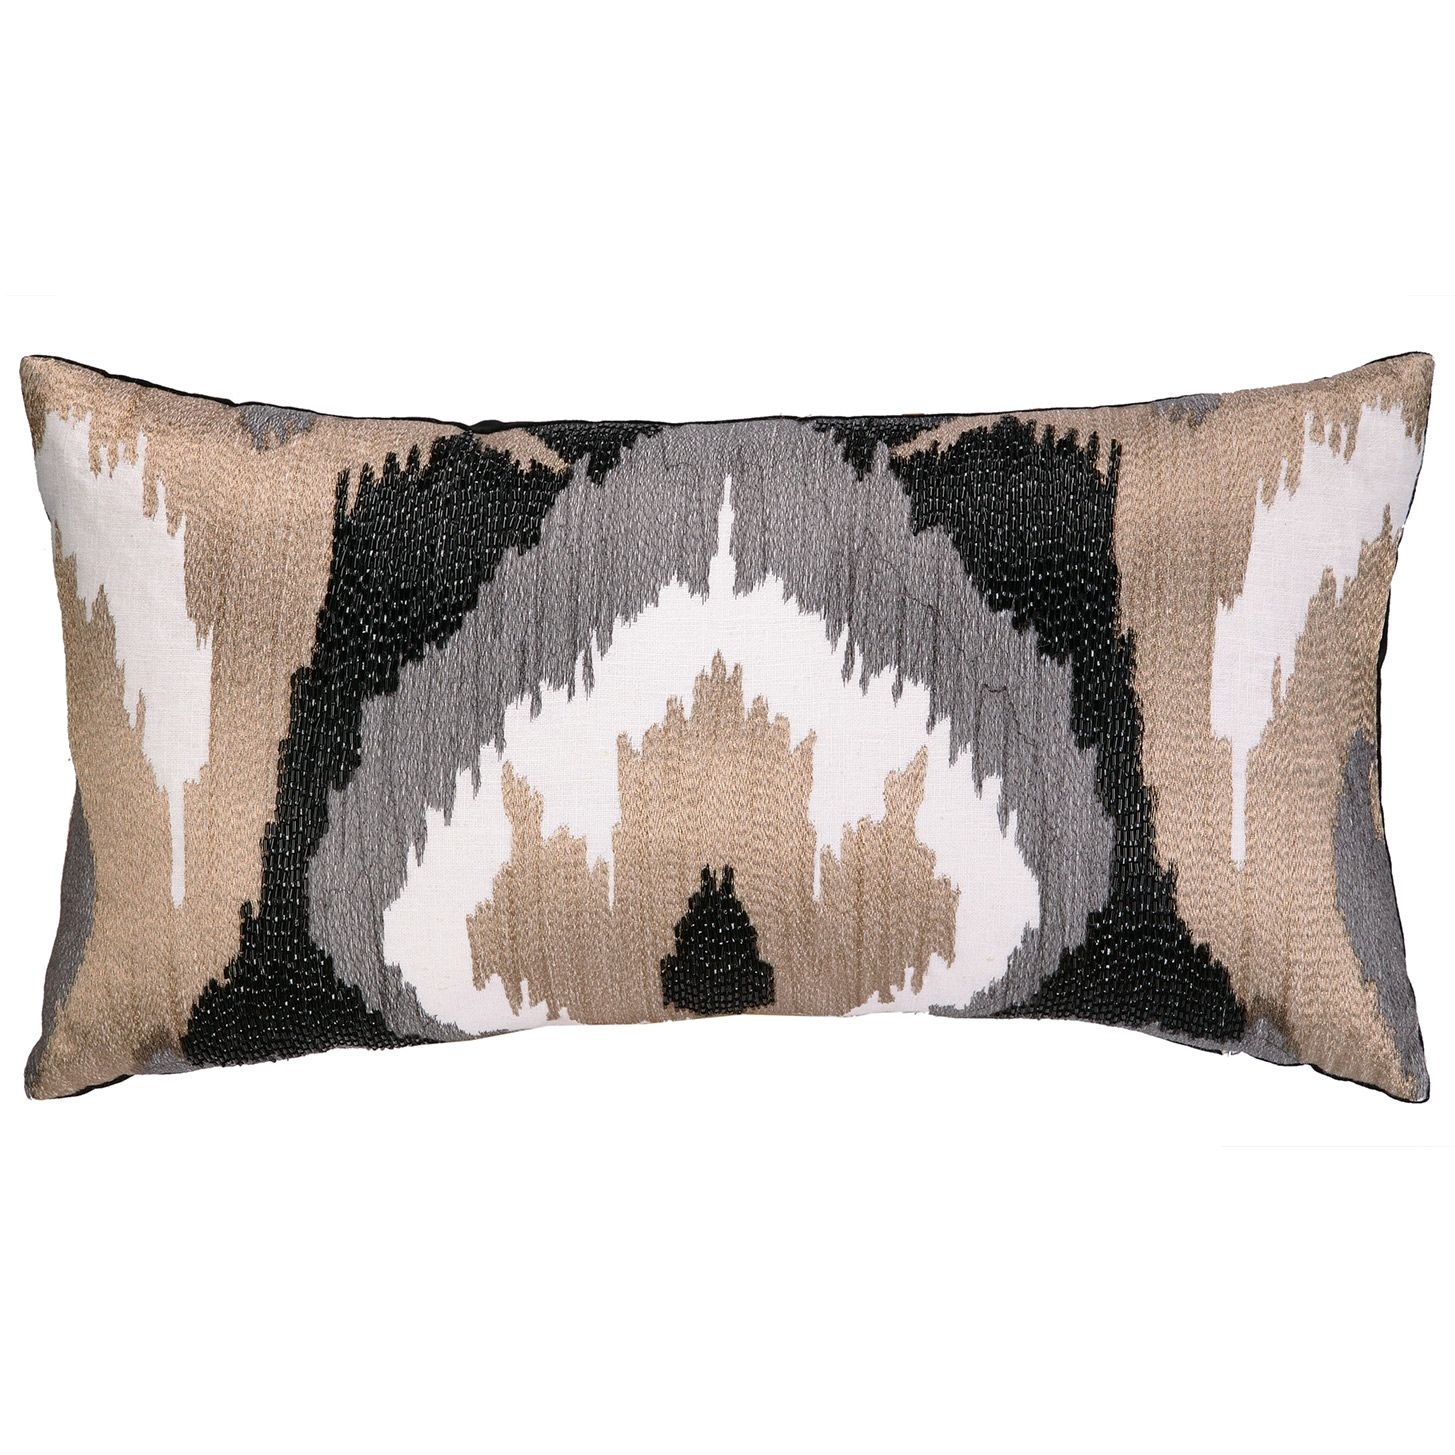 Nanette Lepore Villa Ikat Neutral Embroidered Pillow @Zinc_Door comes in other colors too